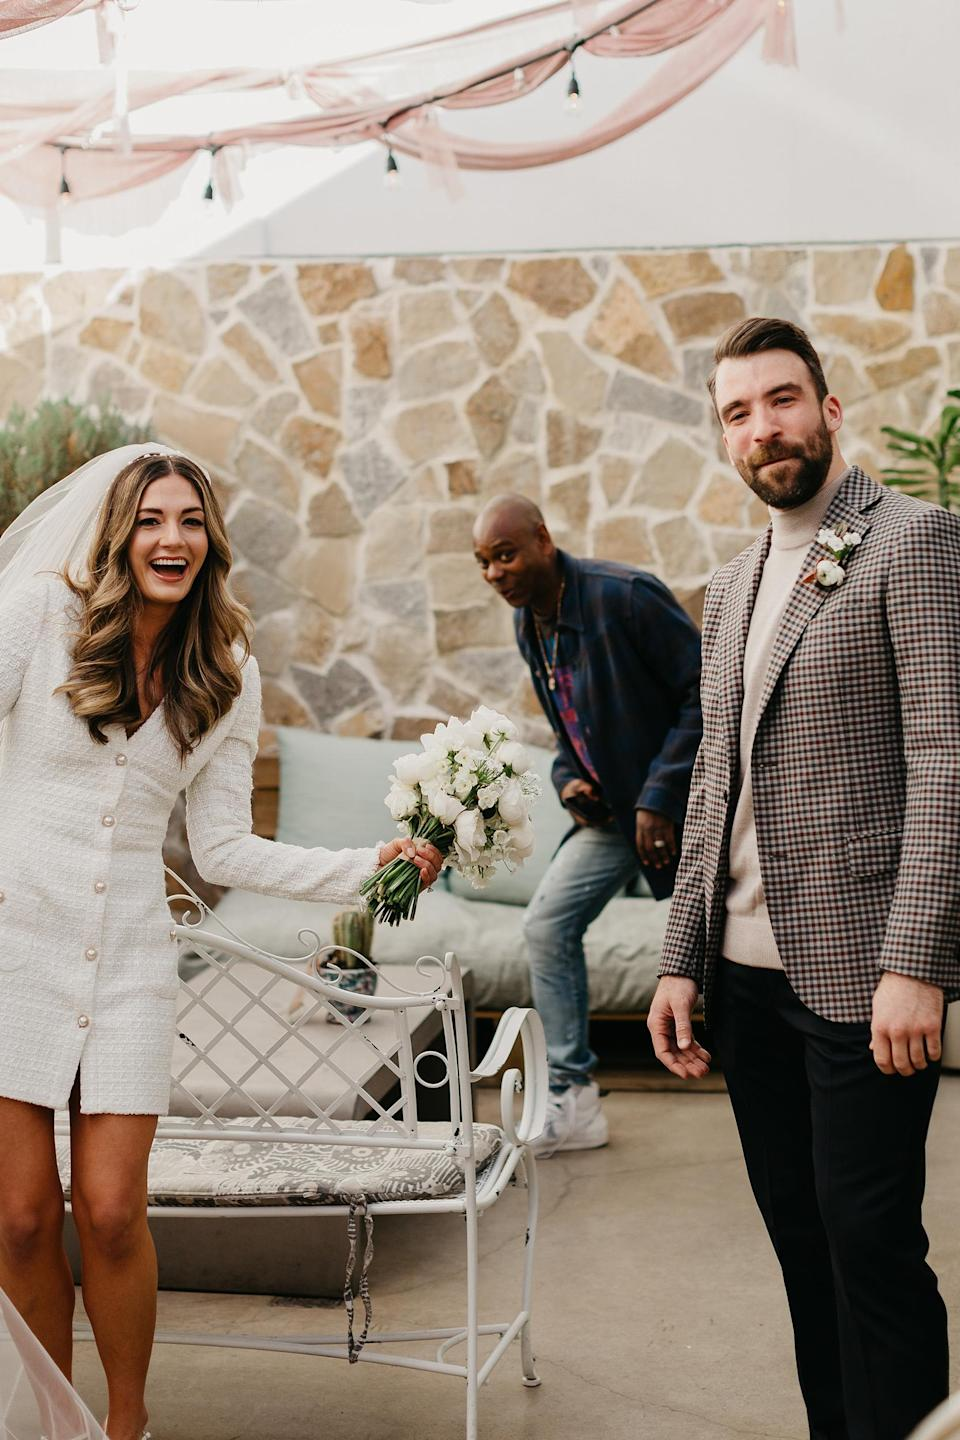 Dave Chappell surprised Eleanor and Matt before their wedding in the outdoor patio area at the Line Hotel in Austin, Texas.  (Anna Szczeczotz)